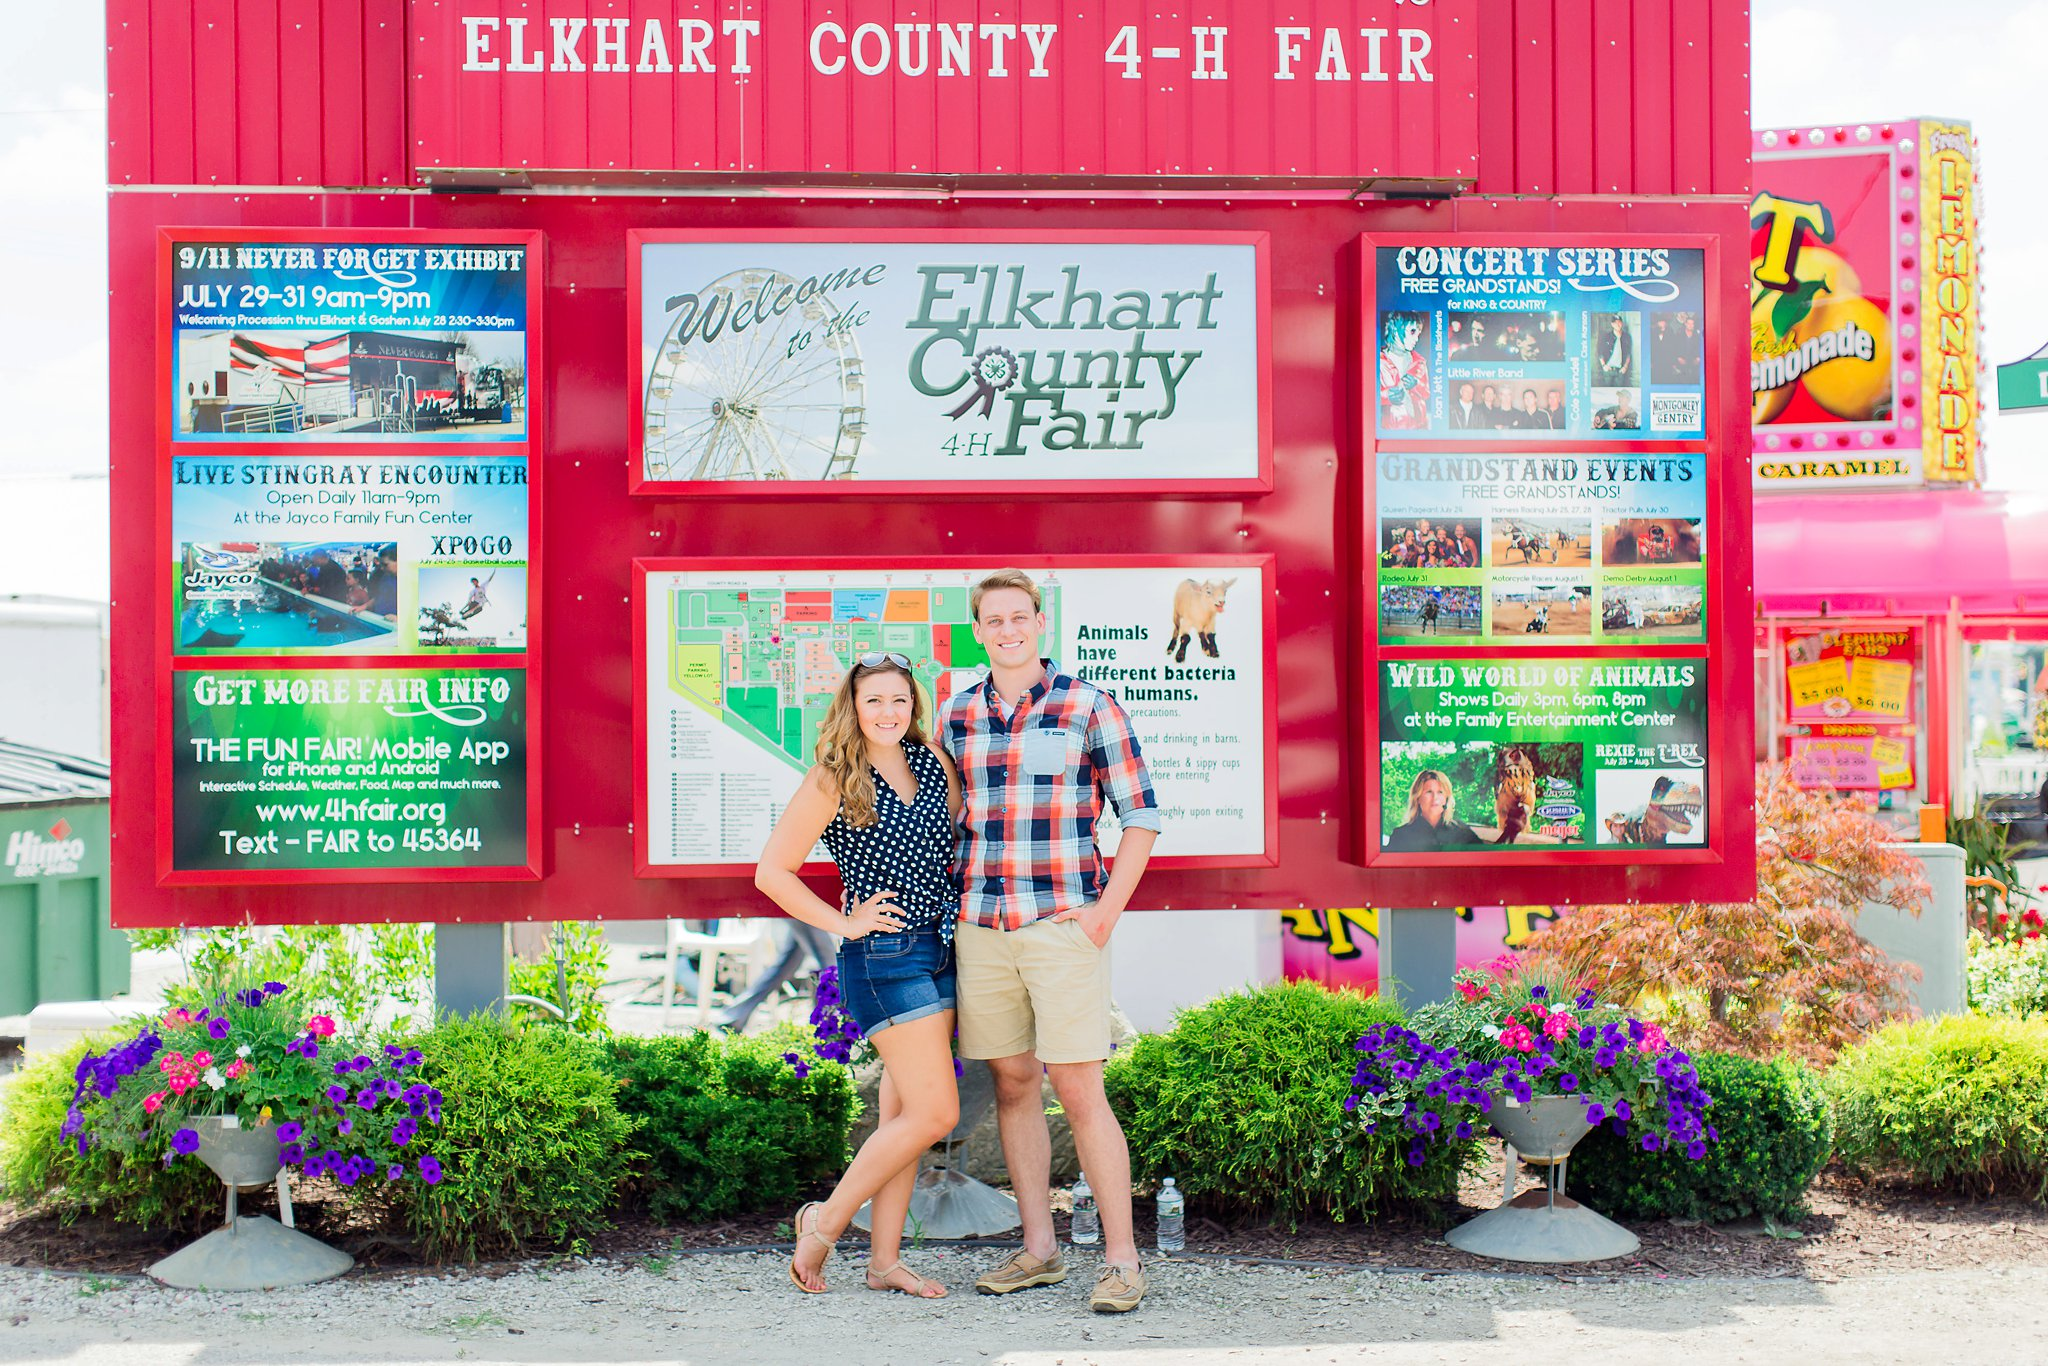 A Day At The Elkhart County 4H Fair | Our 5th Indiana Summer Vacation